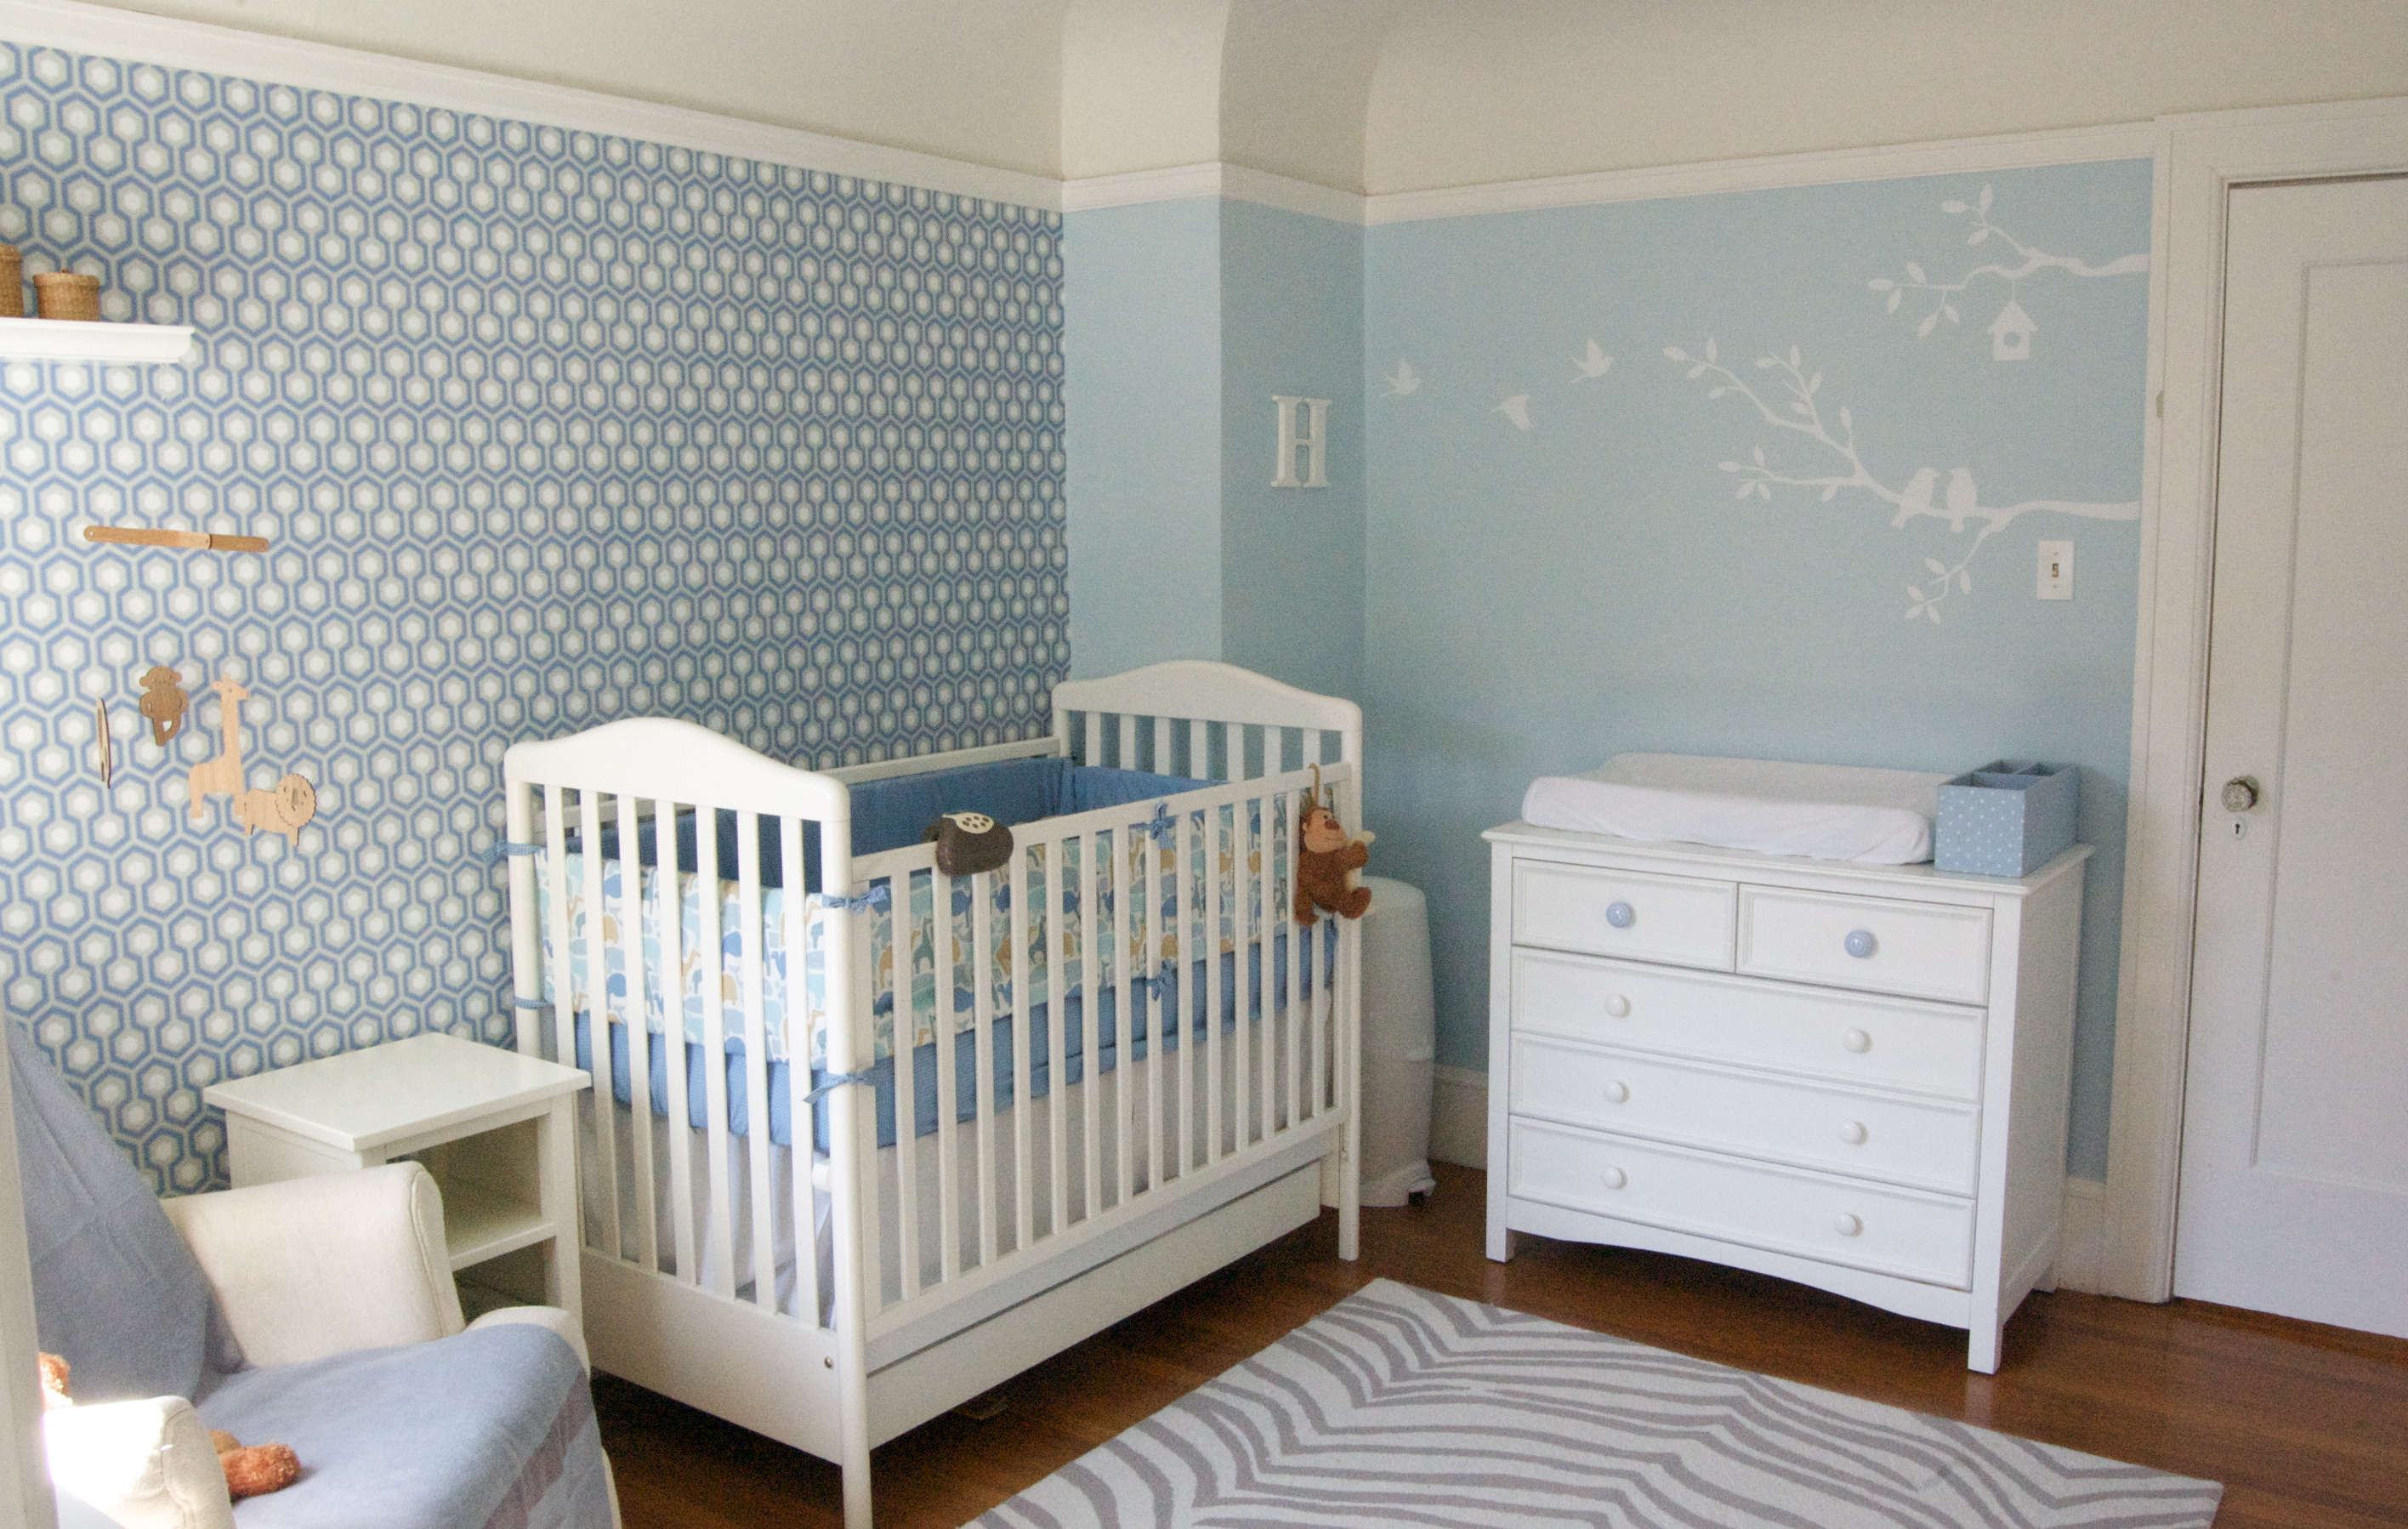 1000 images about baby room ideas on pinterest for Babies decoration room